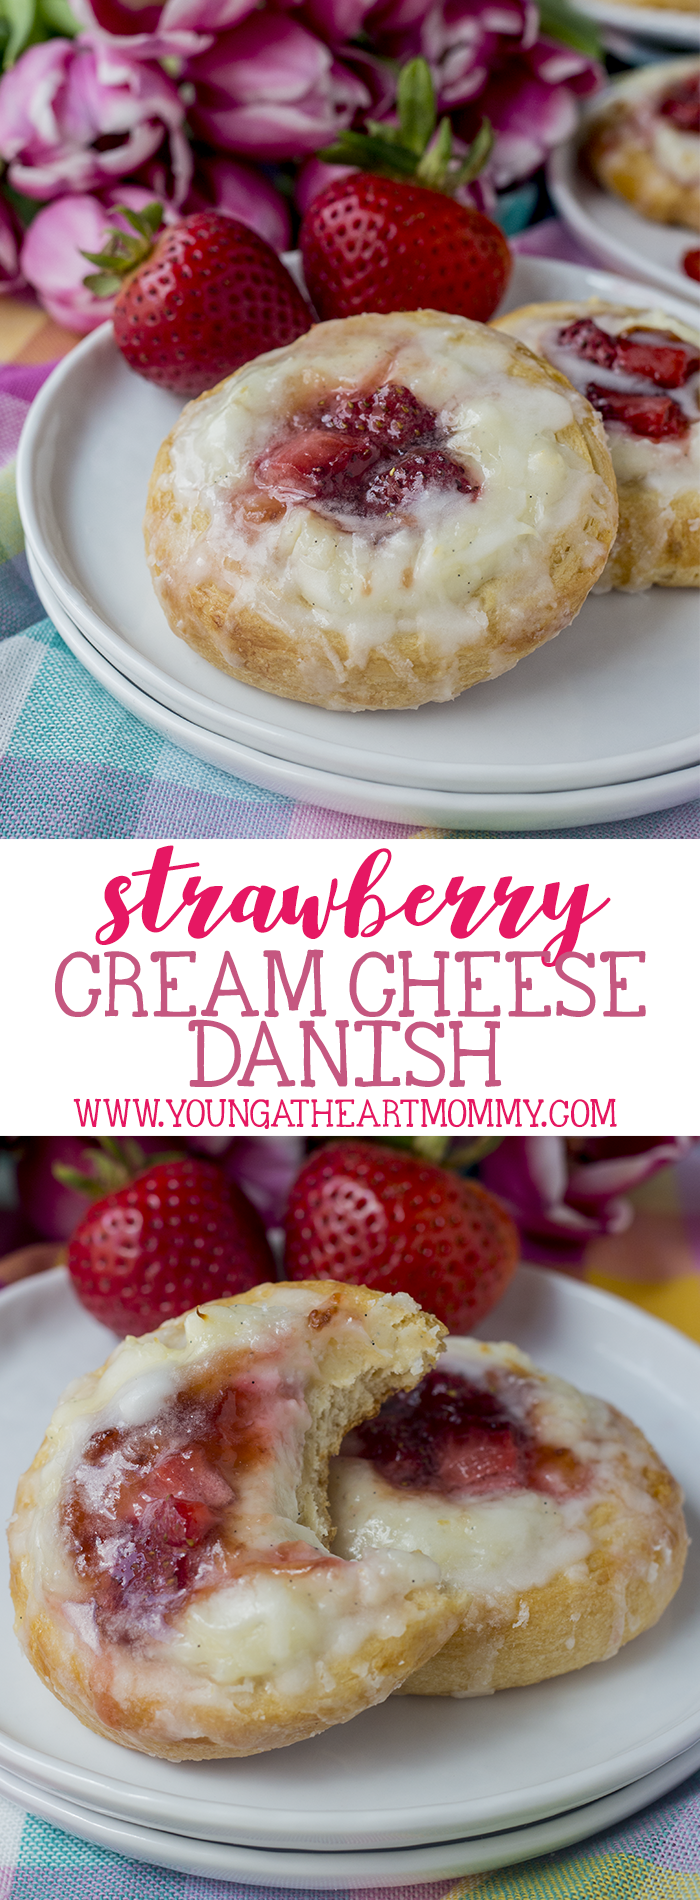 The EASIEST Strawberry Cream Cheese Danish Recipe